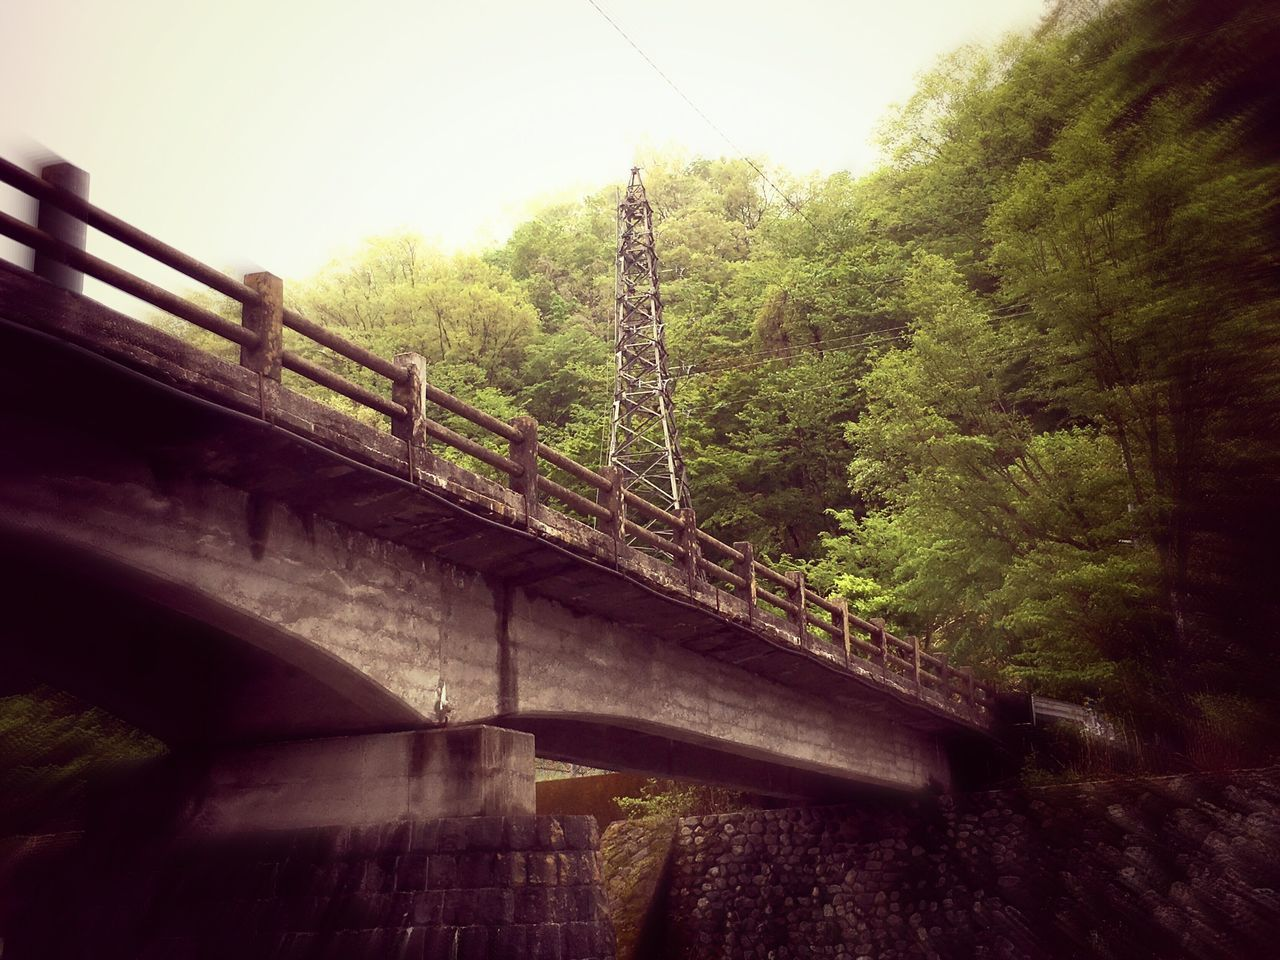 bridge - man made structure, connection, tree, architecture, built structure, railing, no people, day, nature, bridge, growth, outdoors, footbridge, sky